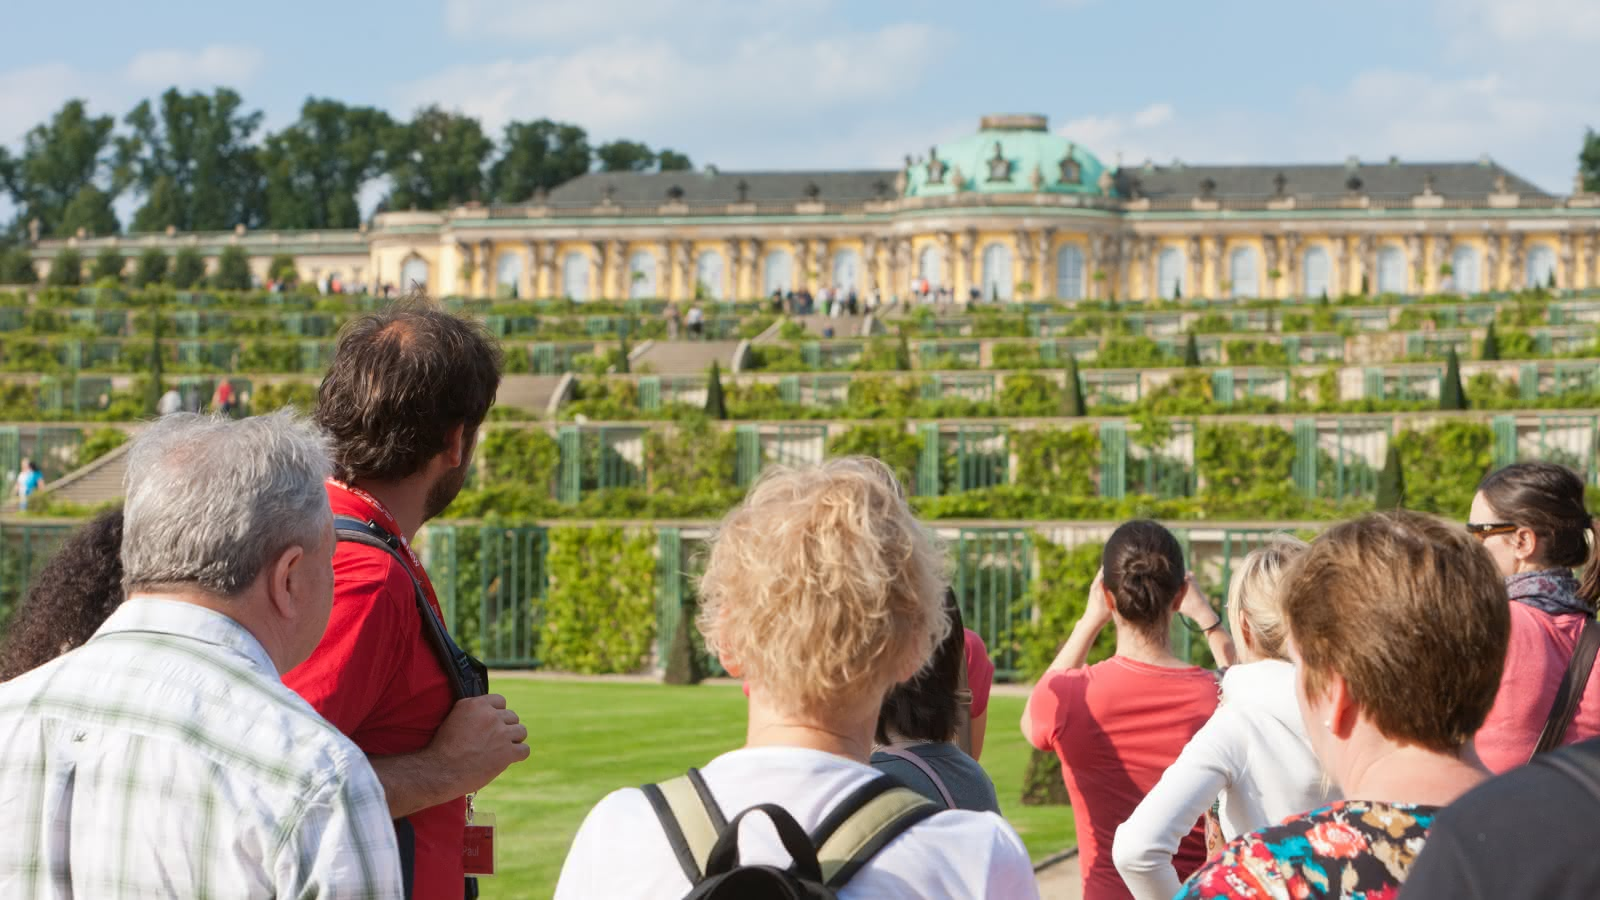 SANDEMANs Potsdam tour group arrive at sanssouci palace